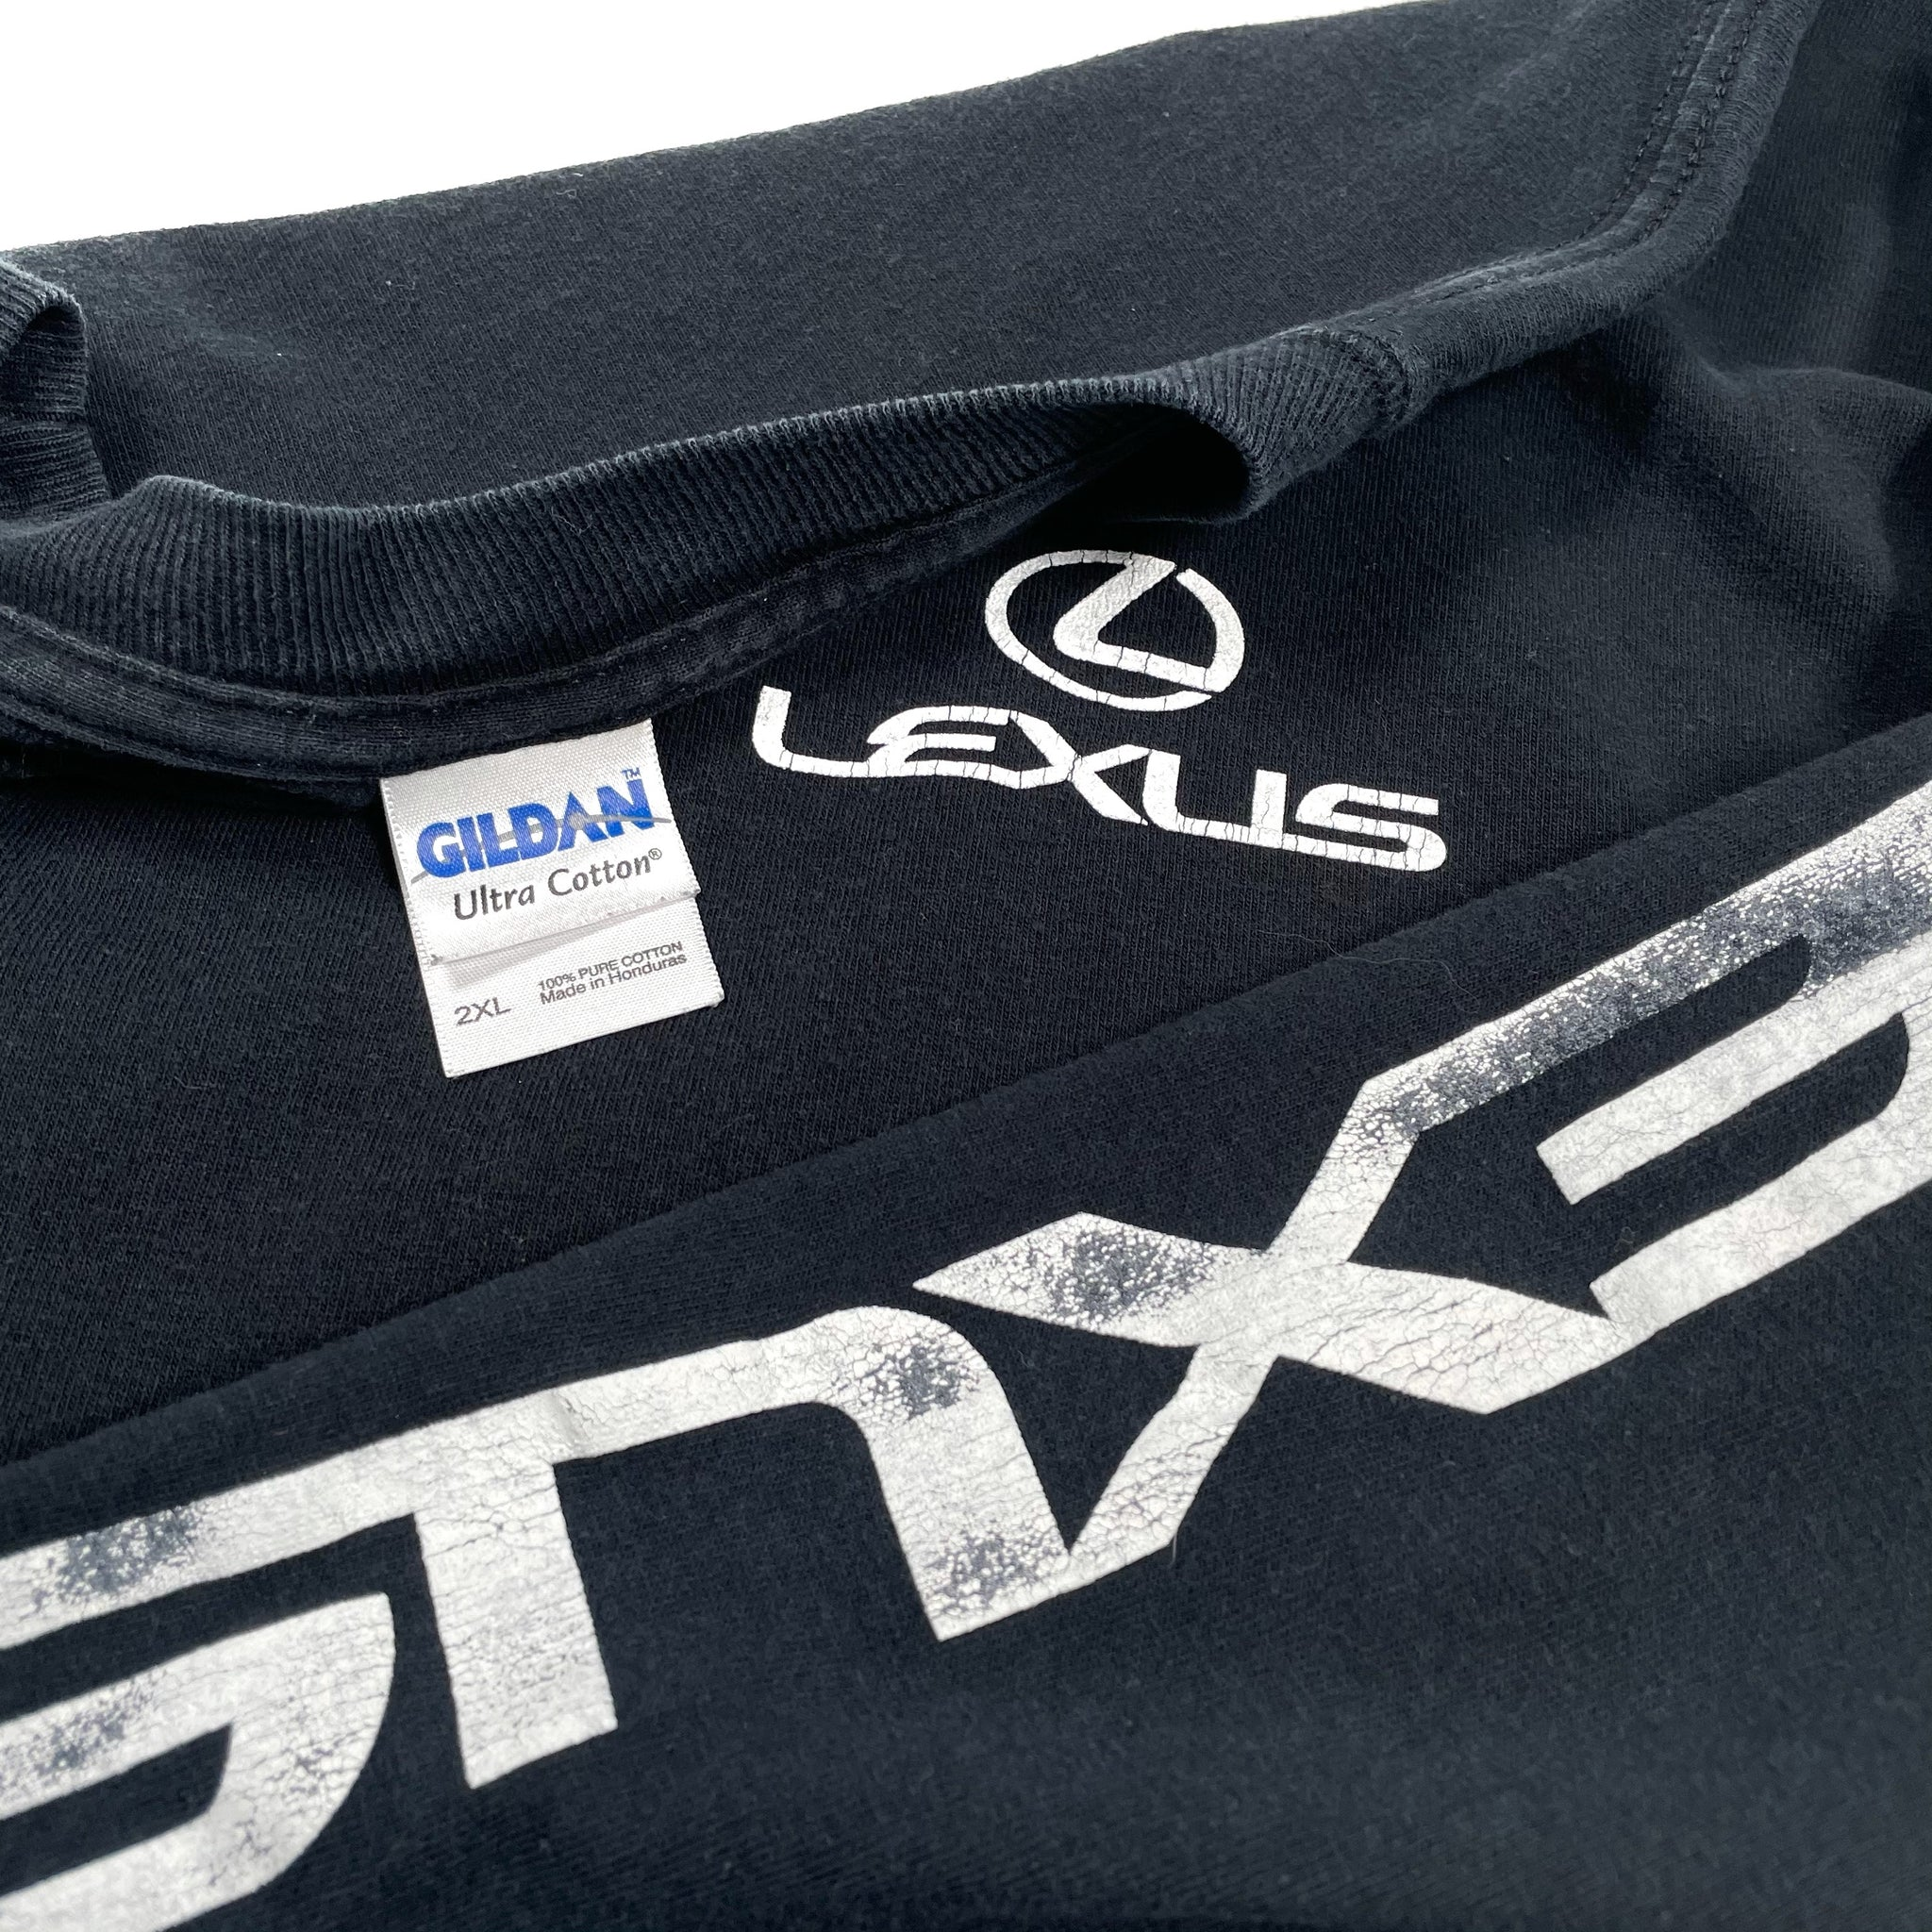 Lexus Long Sleeve Shirt (XXL)